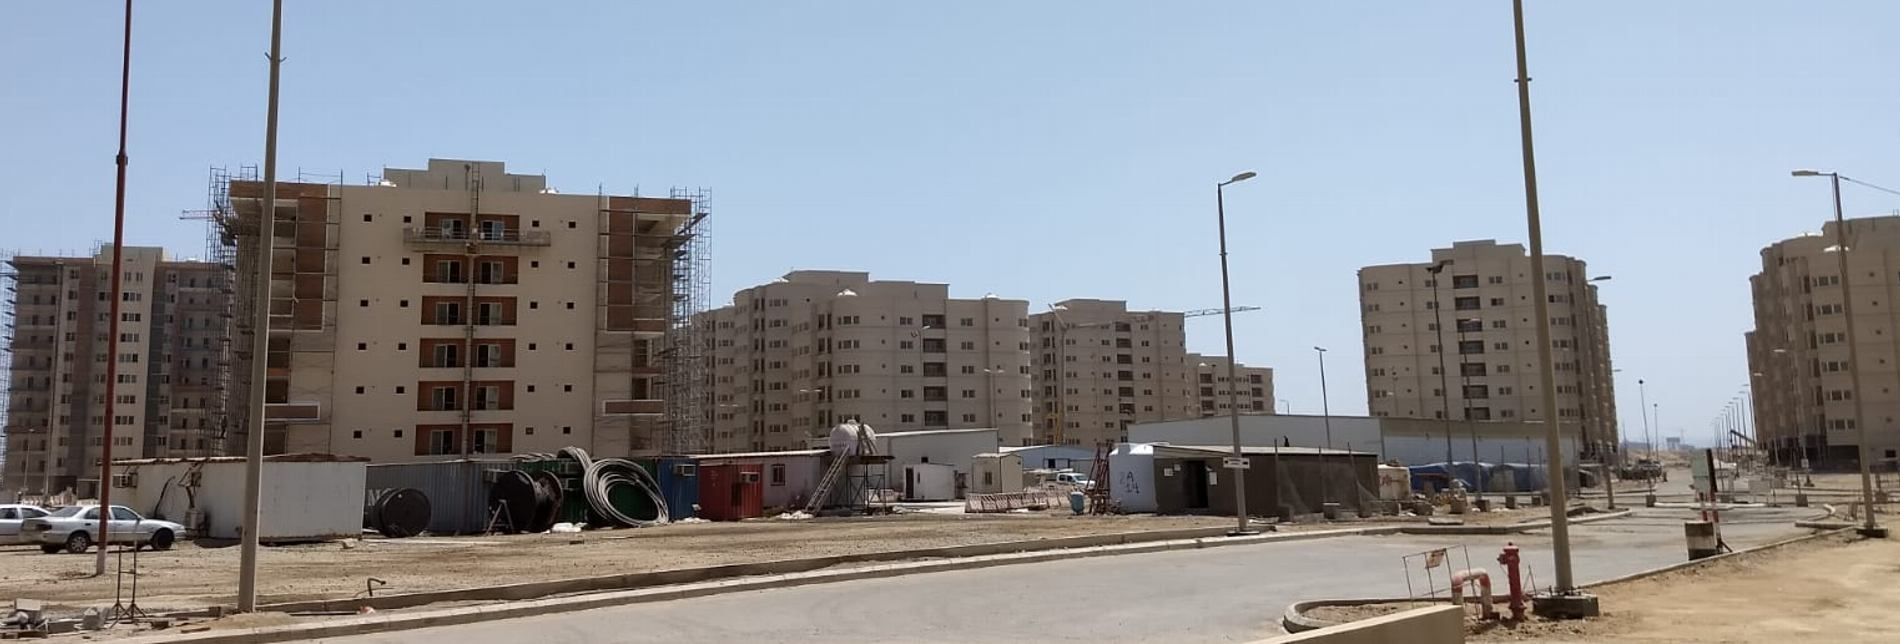 Asia Al Raidah Housing Complex Project Jeddah Saudi Ar